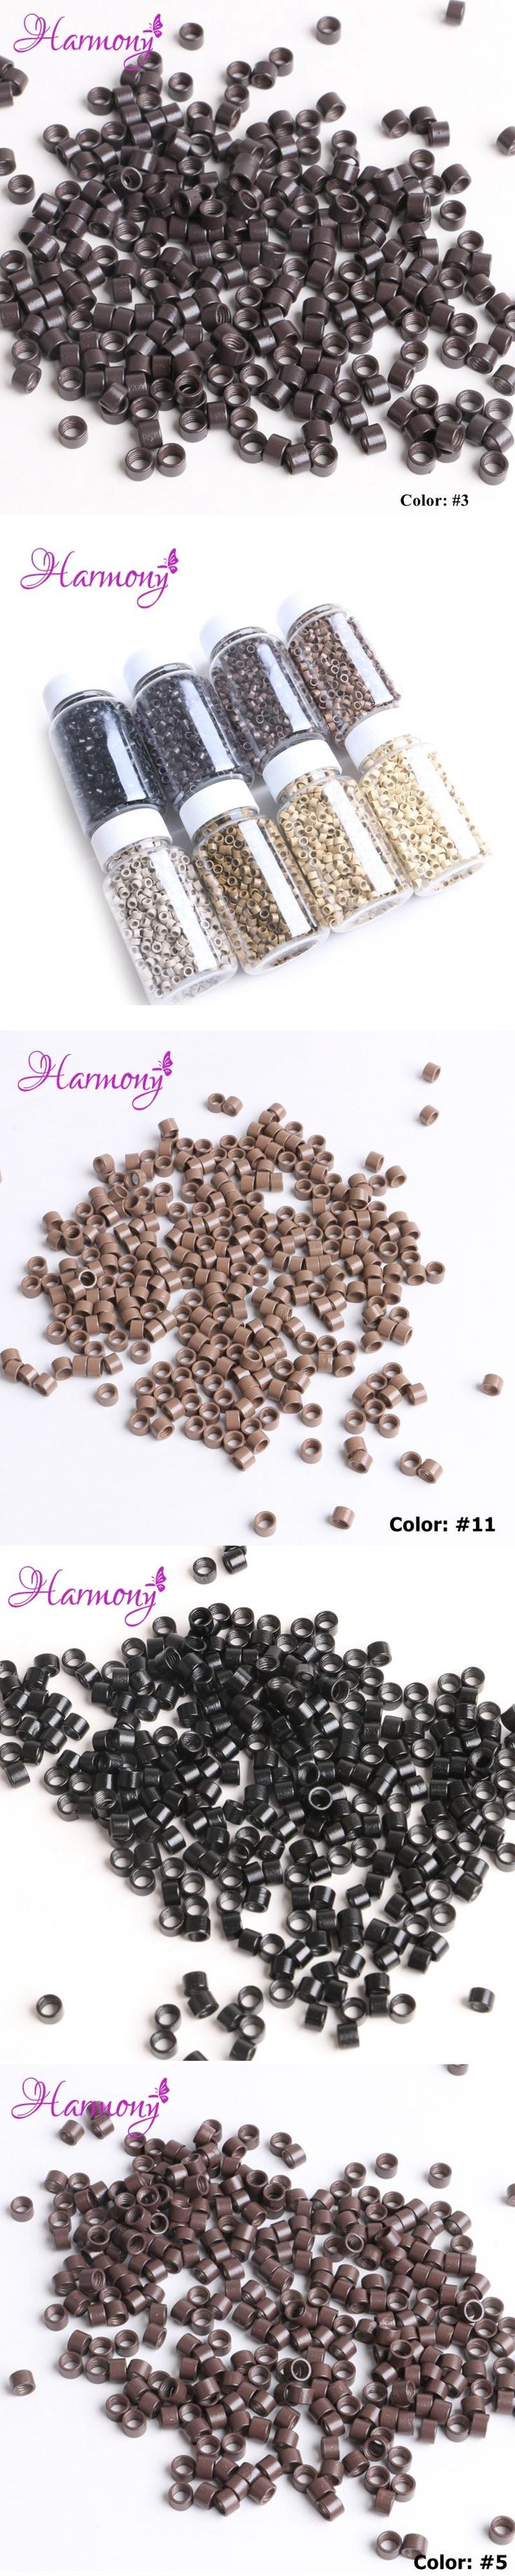 Harmony 1000Pcs/Bottle Screw Micro Rings 4.5*3.0*3.0MM  #1 Black Micro Crimp Beads Micro Bead Hair Extensions Accessories